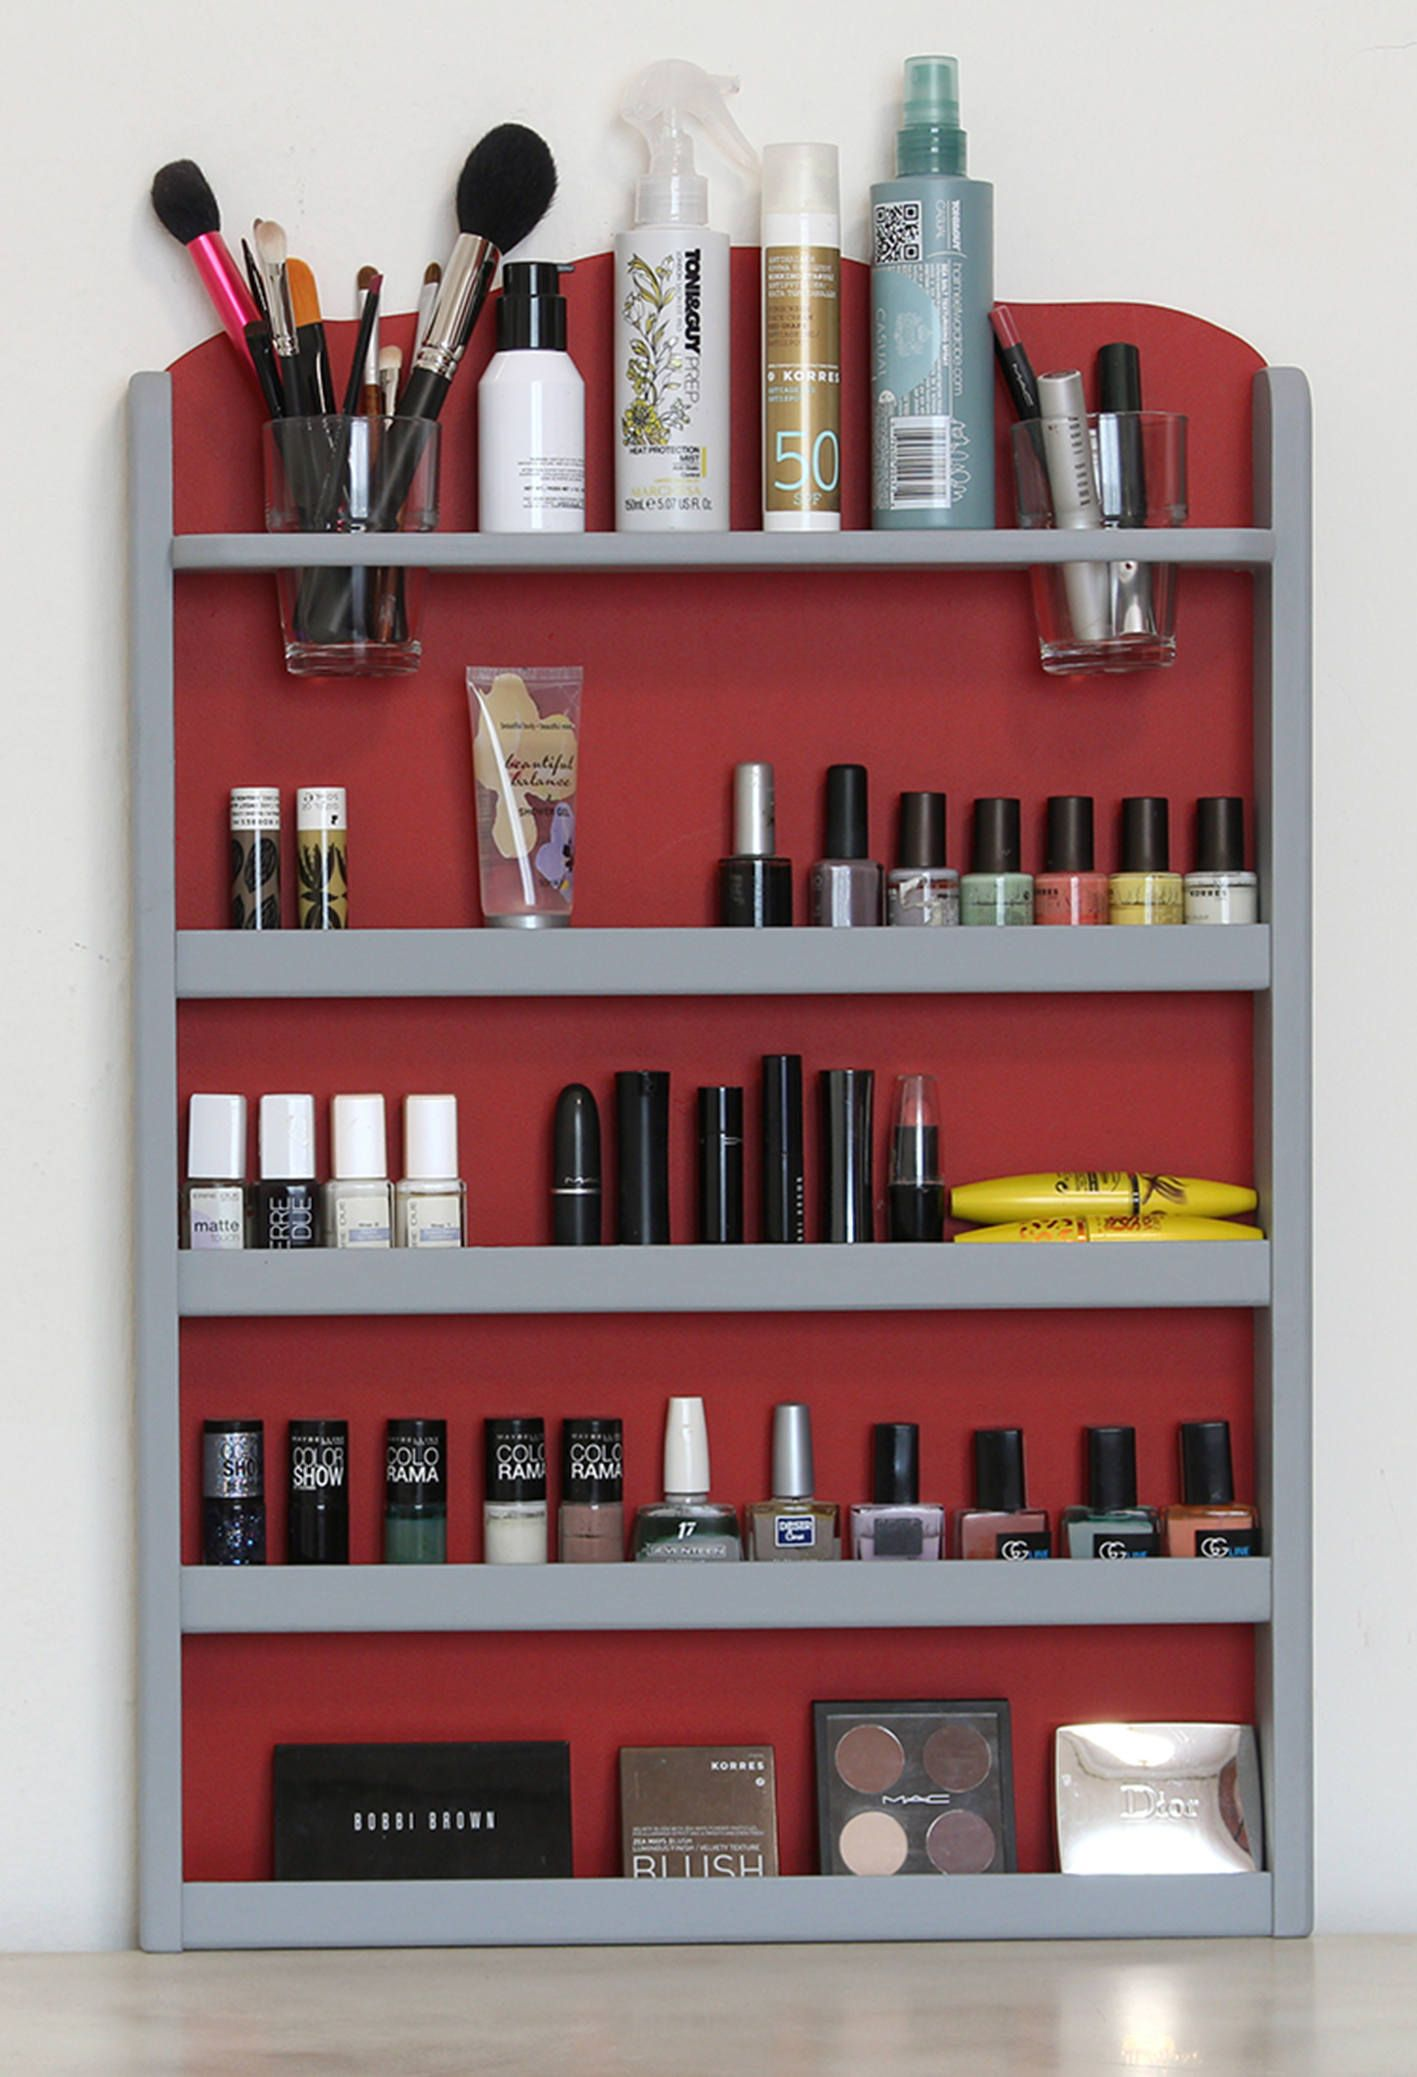 Wall Mounted Makeup Organizer Nail Polish Rack Beauty Etsy Makeup Organization Wall Mounted Makeup Organizer Lipstick Organizer